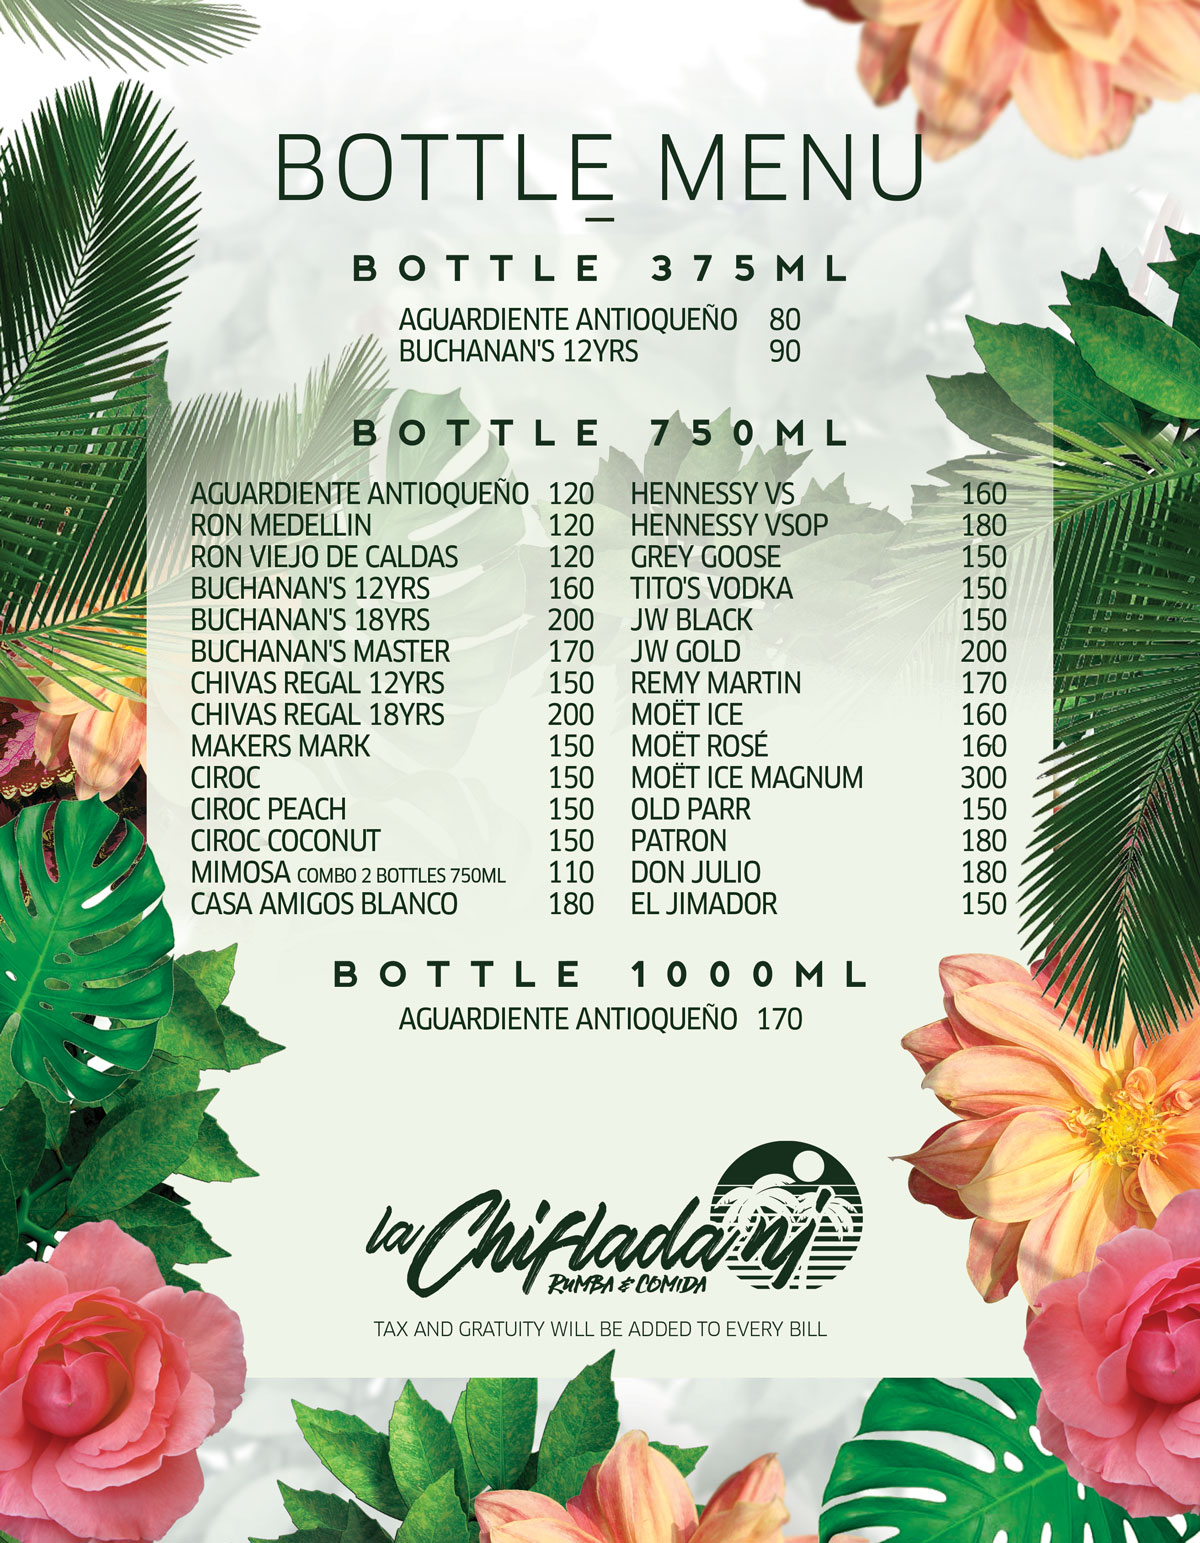 la-chiflada-friday-bottle-menu-saturday